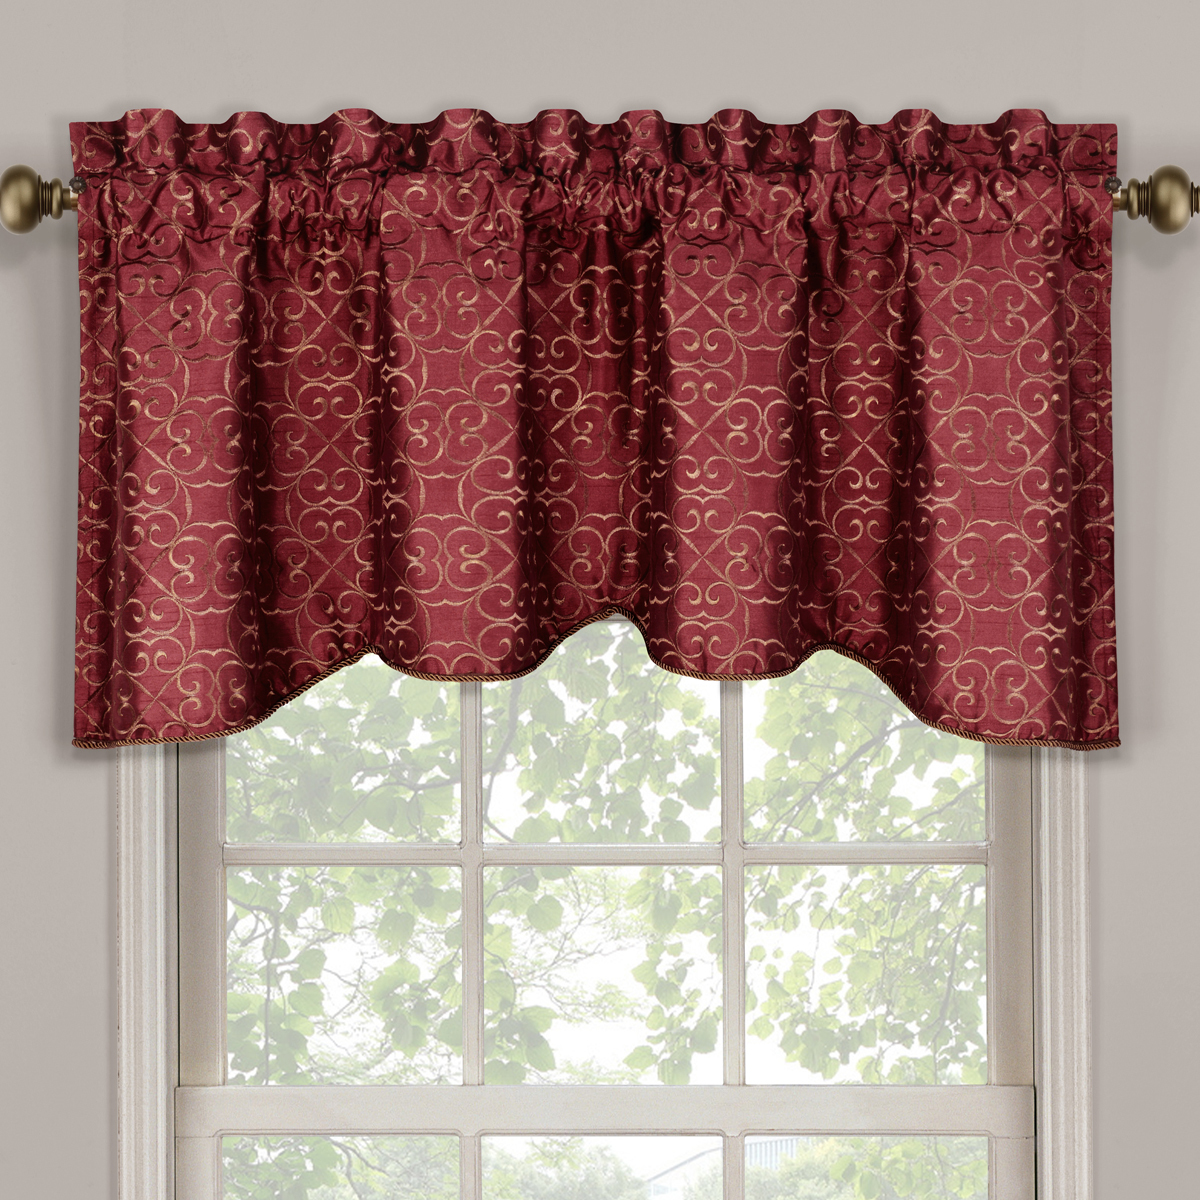 Montego Stripe Lined Scalloped Valance: Halifax Scalloped Decorative Rope Embroidered Lined Valance